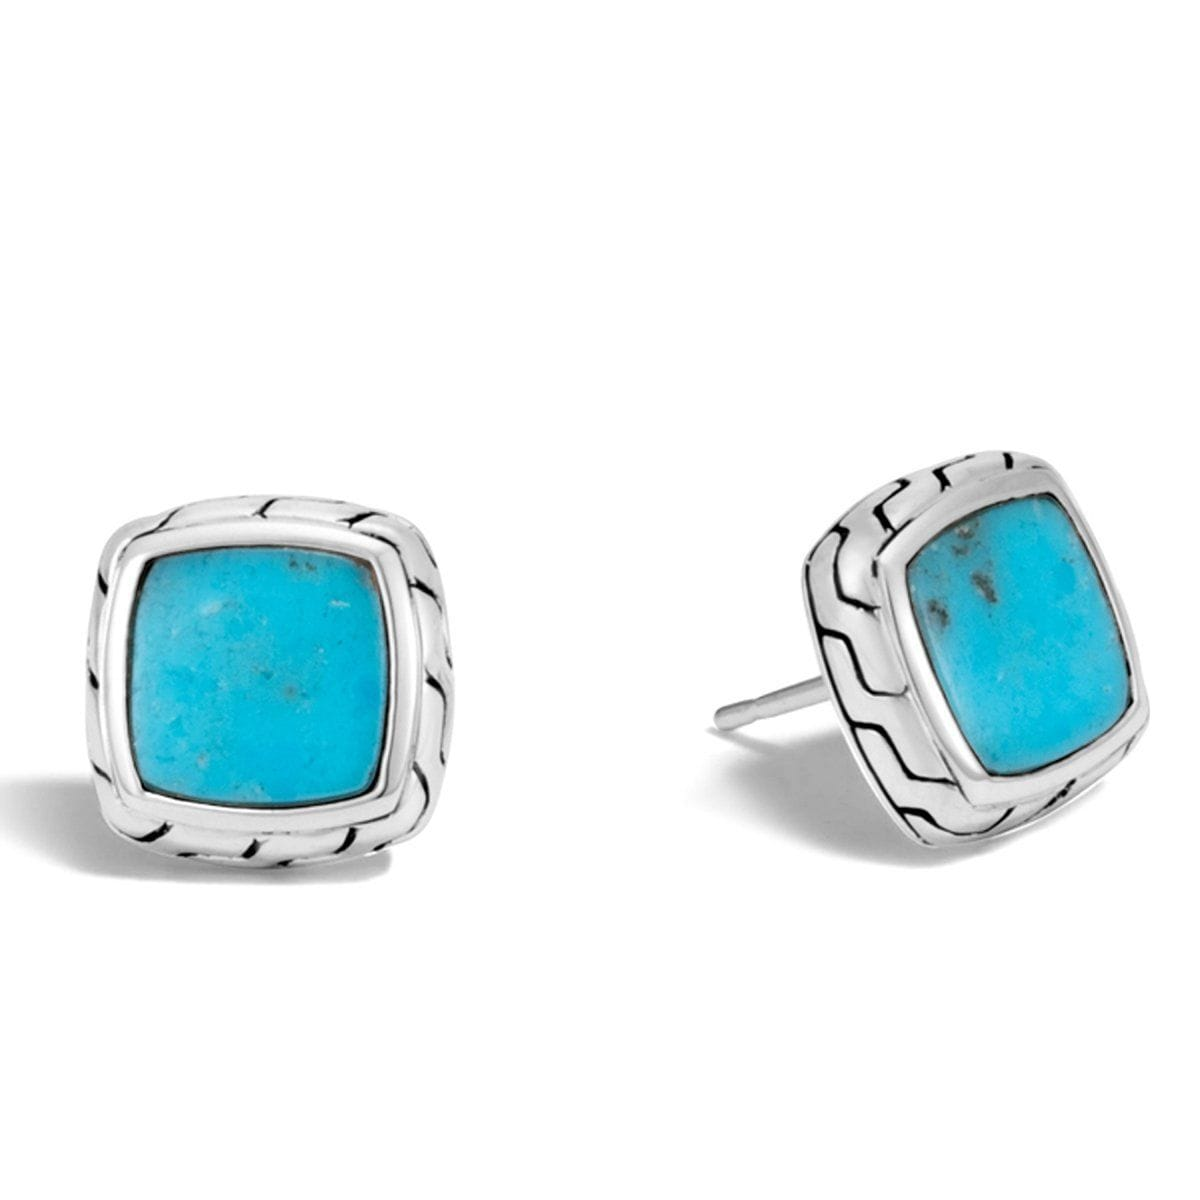 Chain Turquoise Stud Earrings - EBS9995961TQ-John Hardy-Renee Taylor Gallery